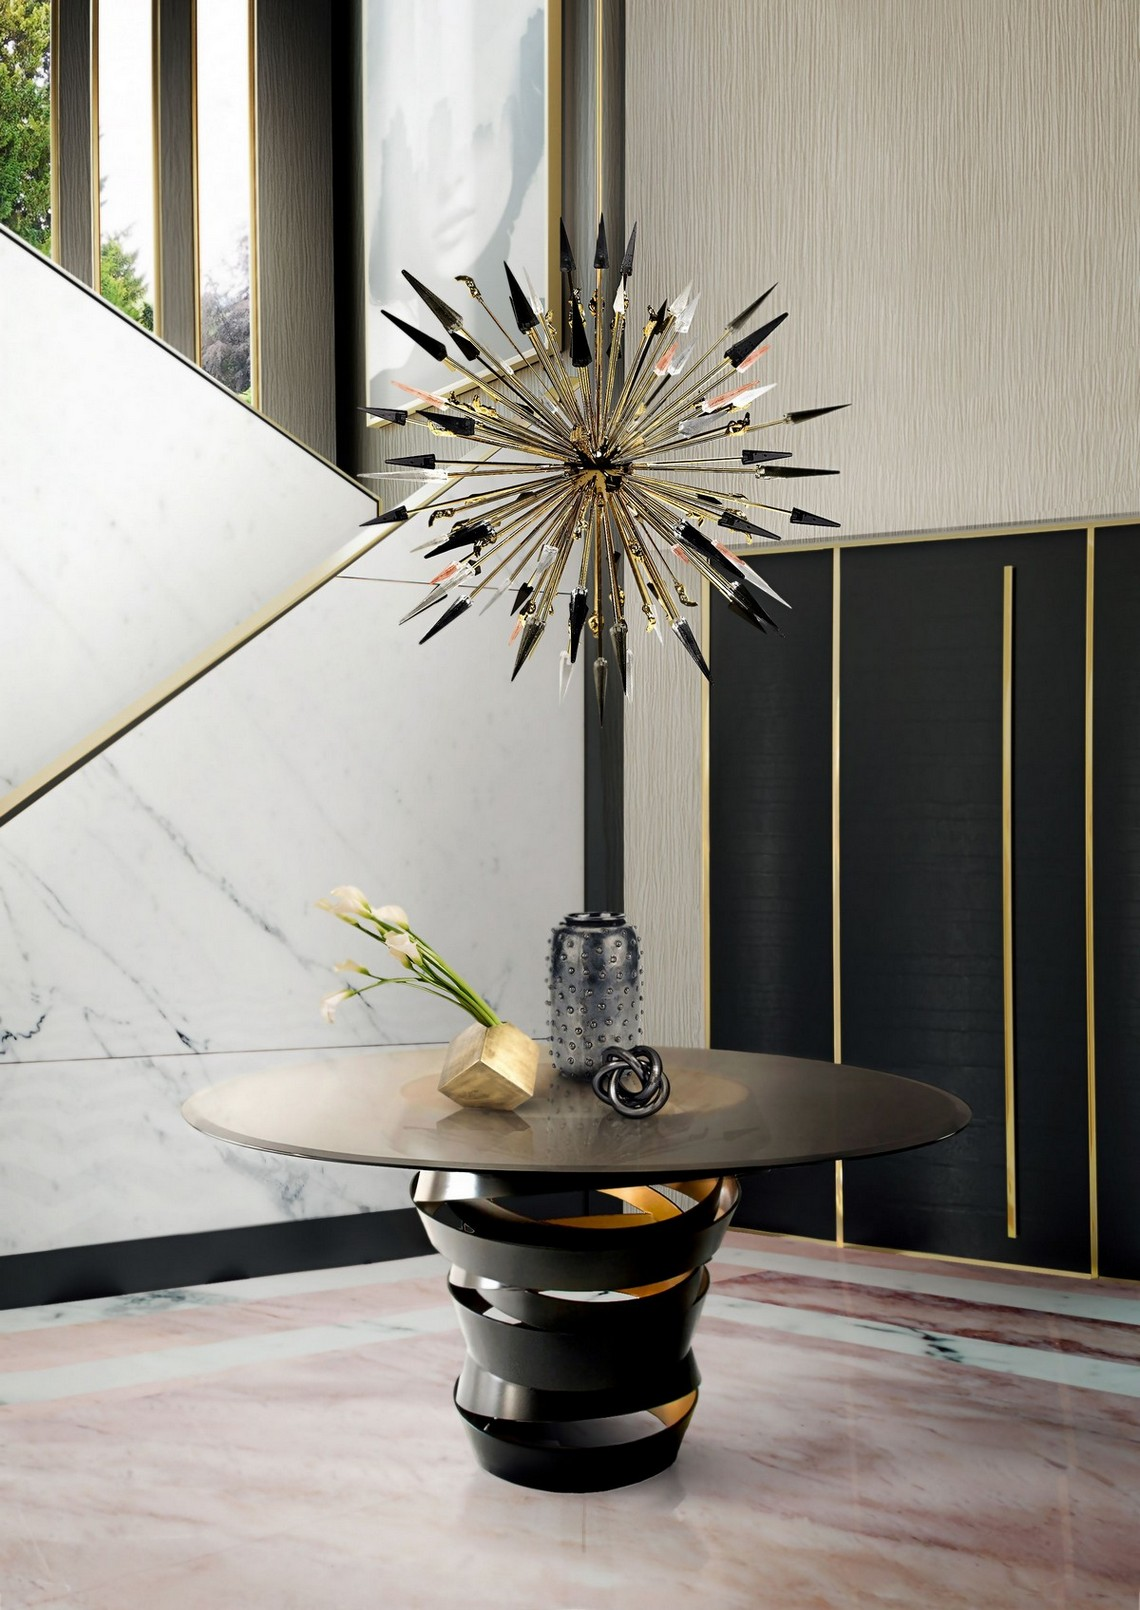 7 Luxury Chandeliers You Will Love luxury chandeliers 7 Luxury Chandeliers You Will Love outburst